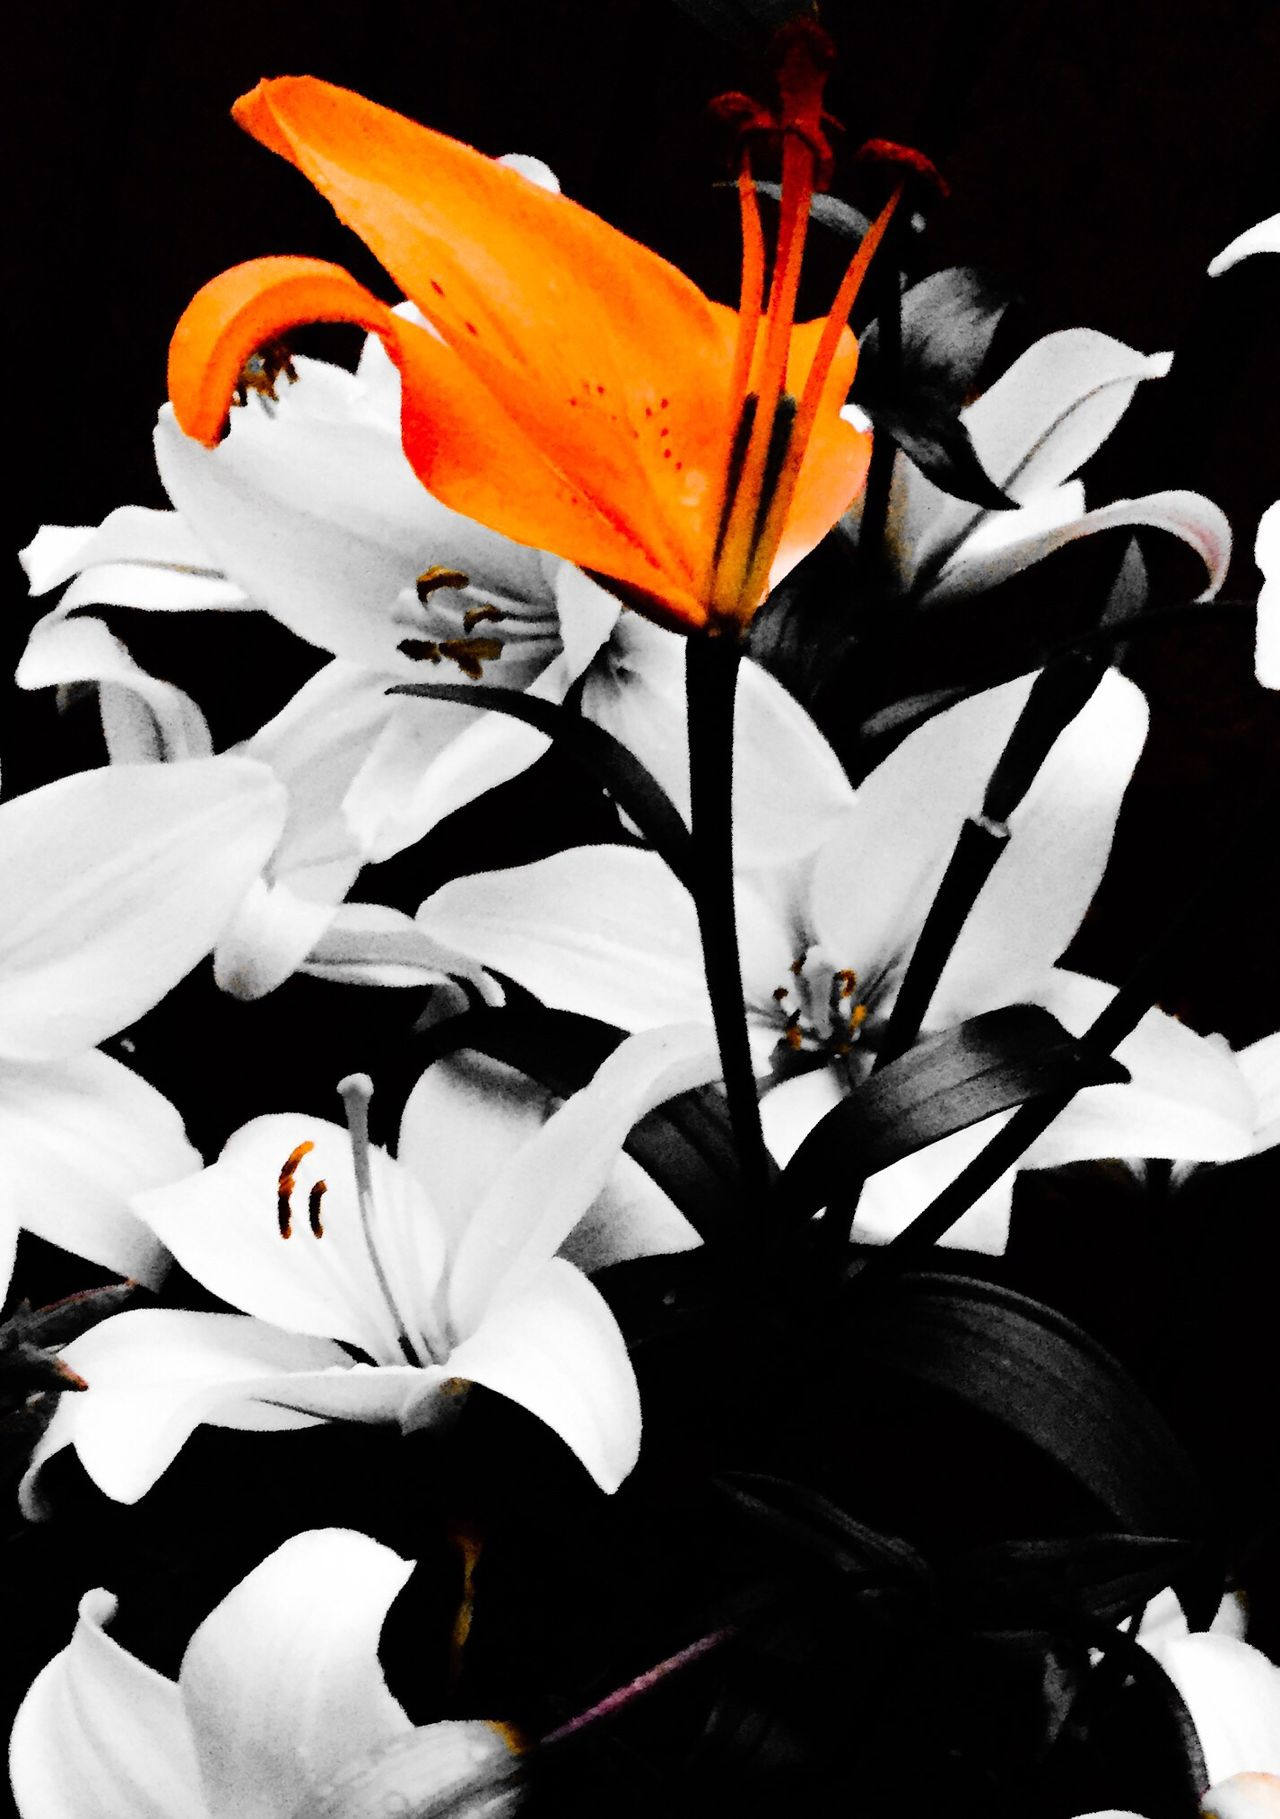 Lily Lilies Orange Flower White Flower Beauty In Nature No People EyeEm Nature Lover Orange Flowers Flowers_collection Flowers In My Garden Flowers, Nature And Beauty Lilies In Bloom Orange Filter